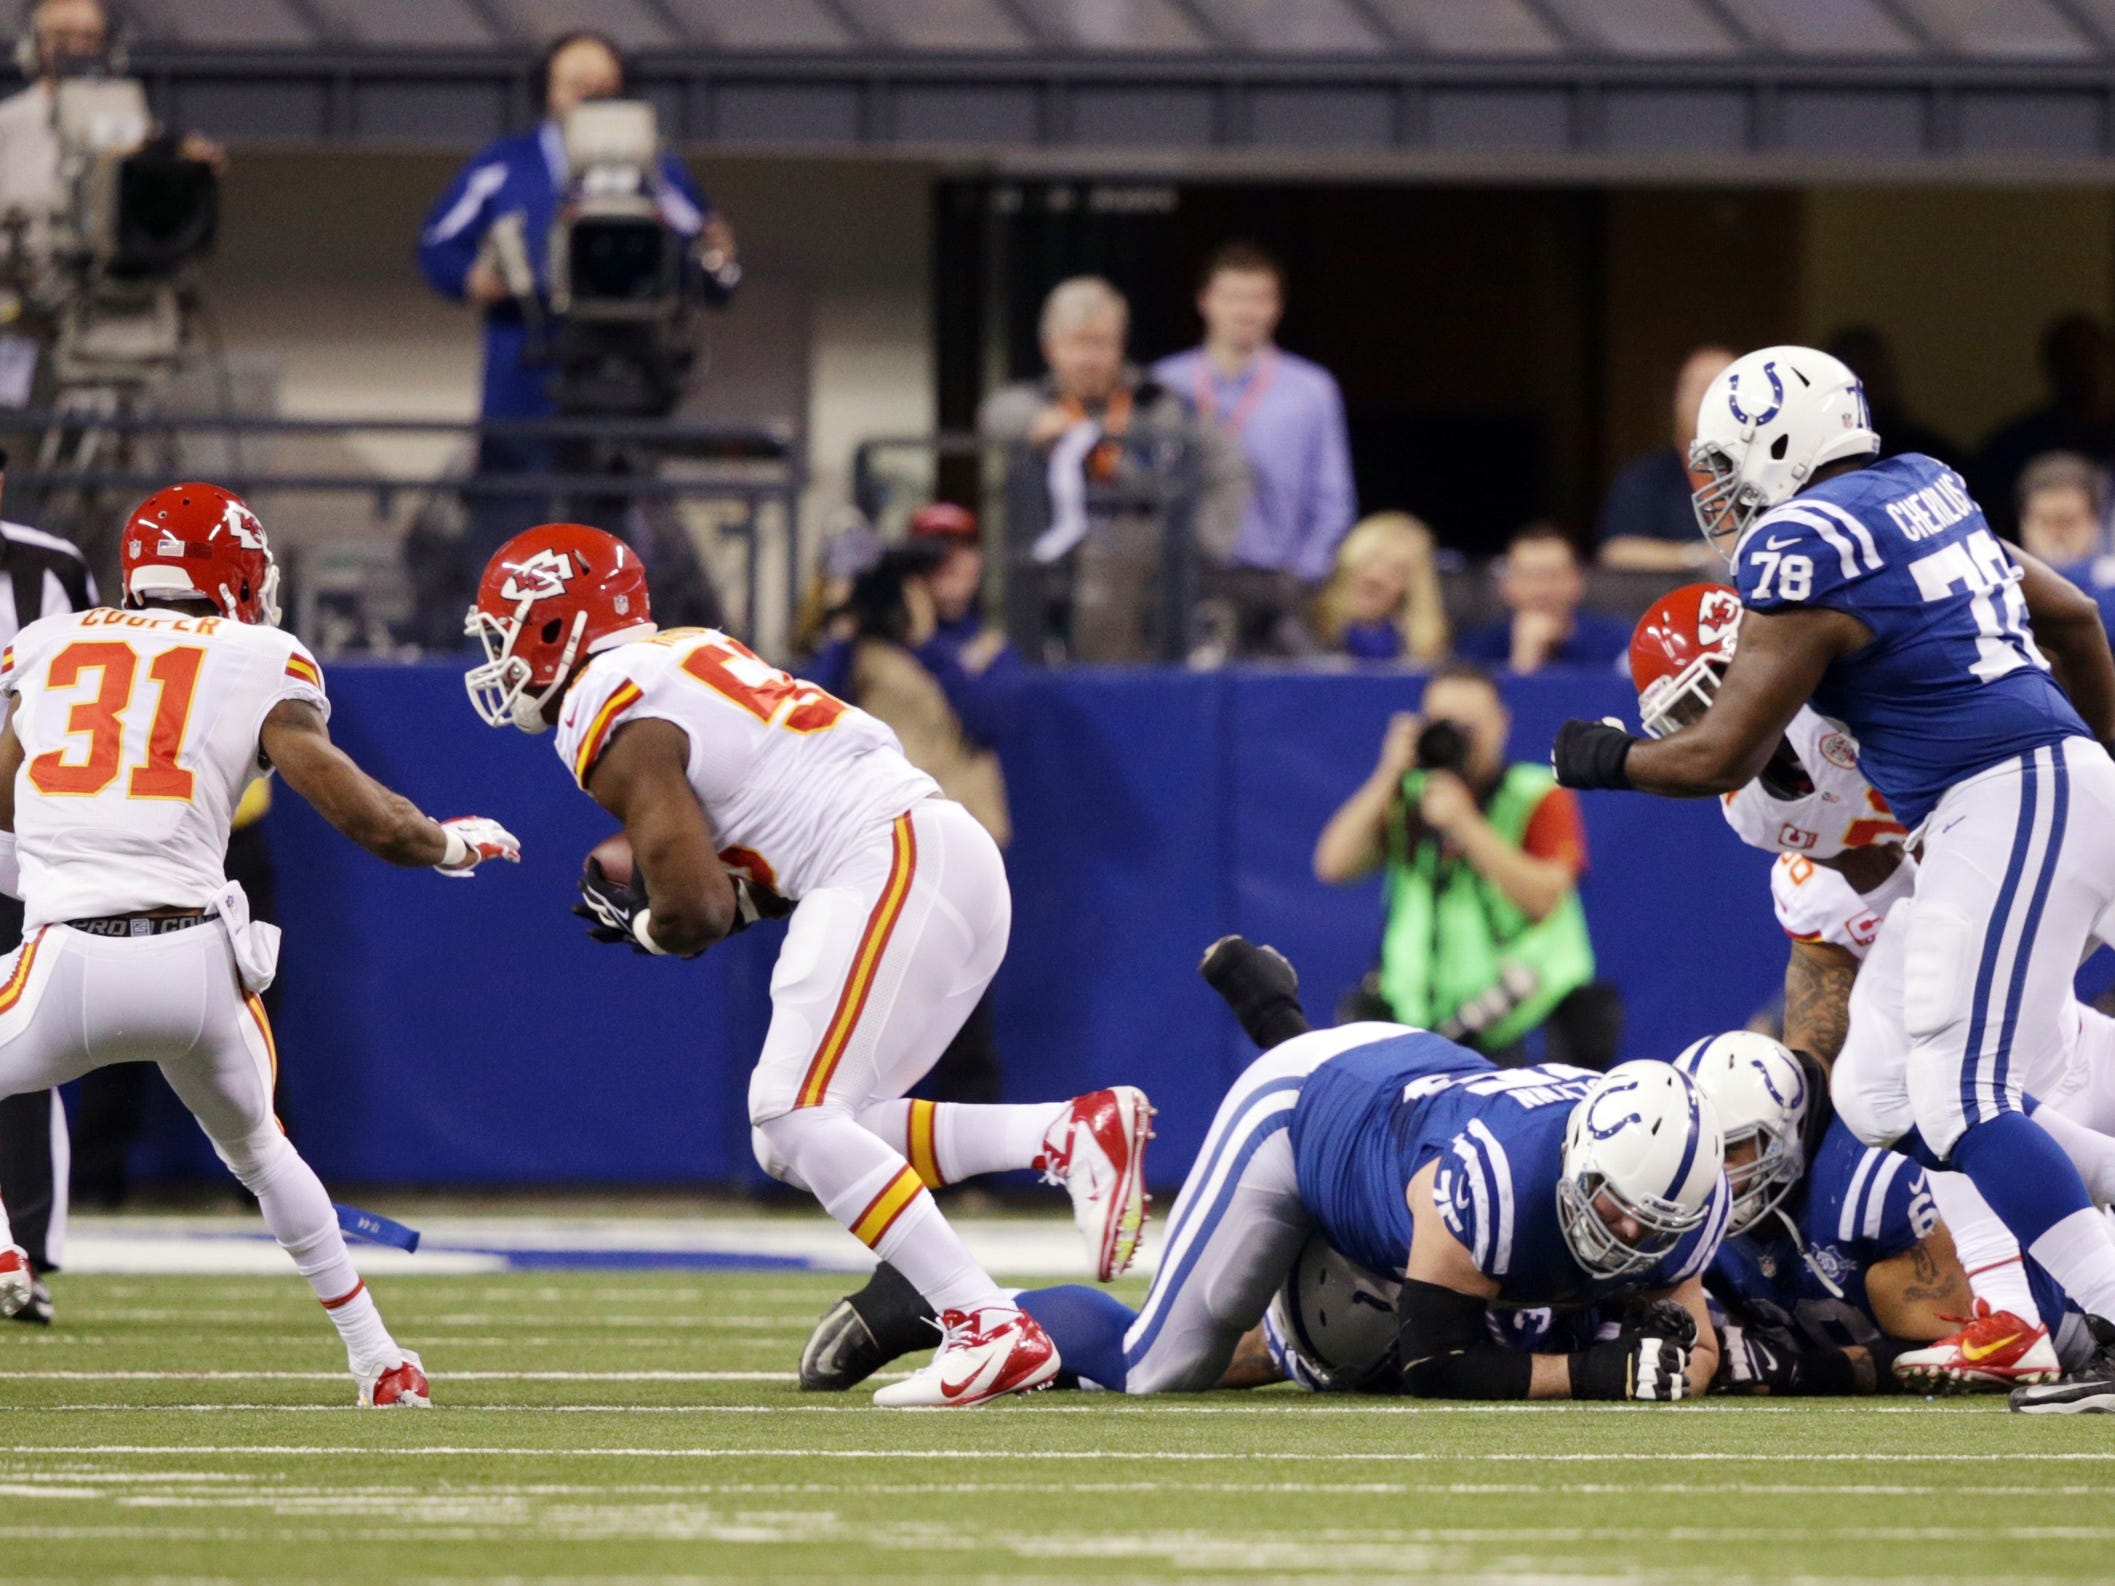 Kansas City Chiefs Justin Houston recovered a fumble during the first round of the NFL playoffs at Lucas Oil Stadium on Jan. 4, 2014.